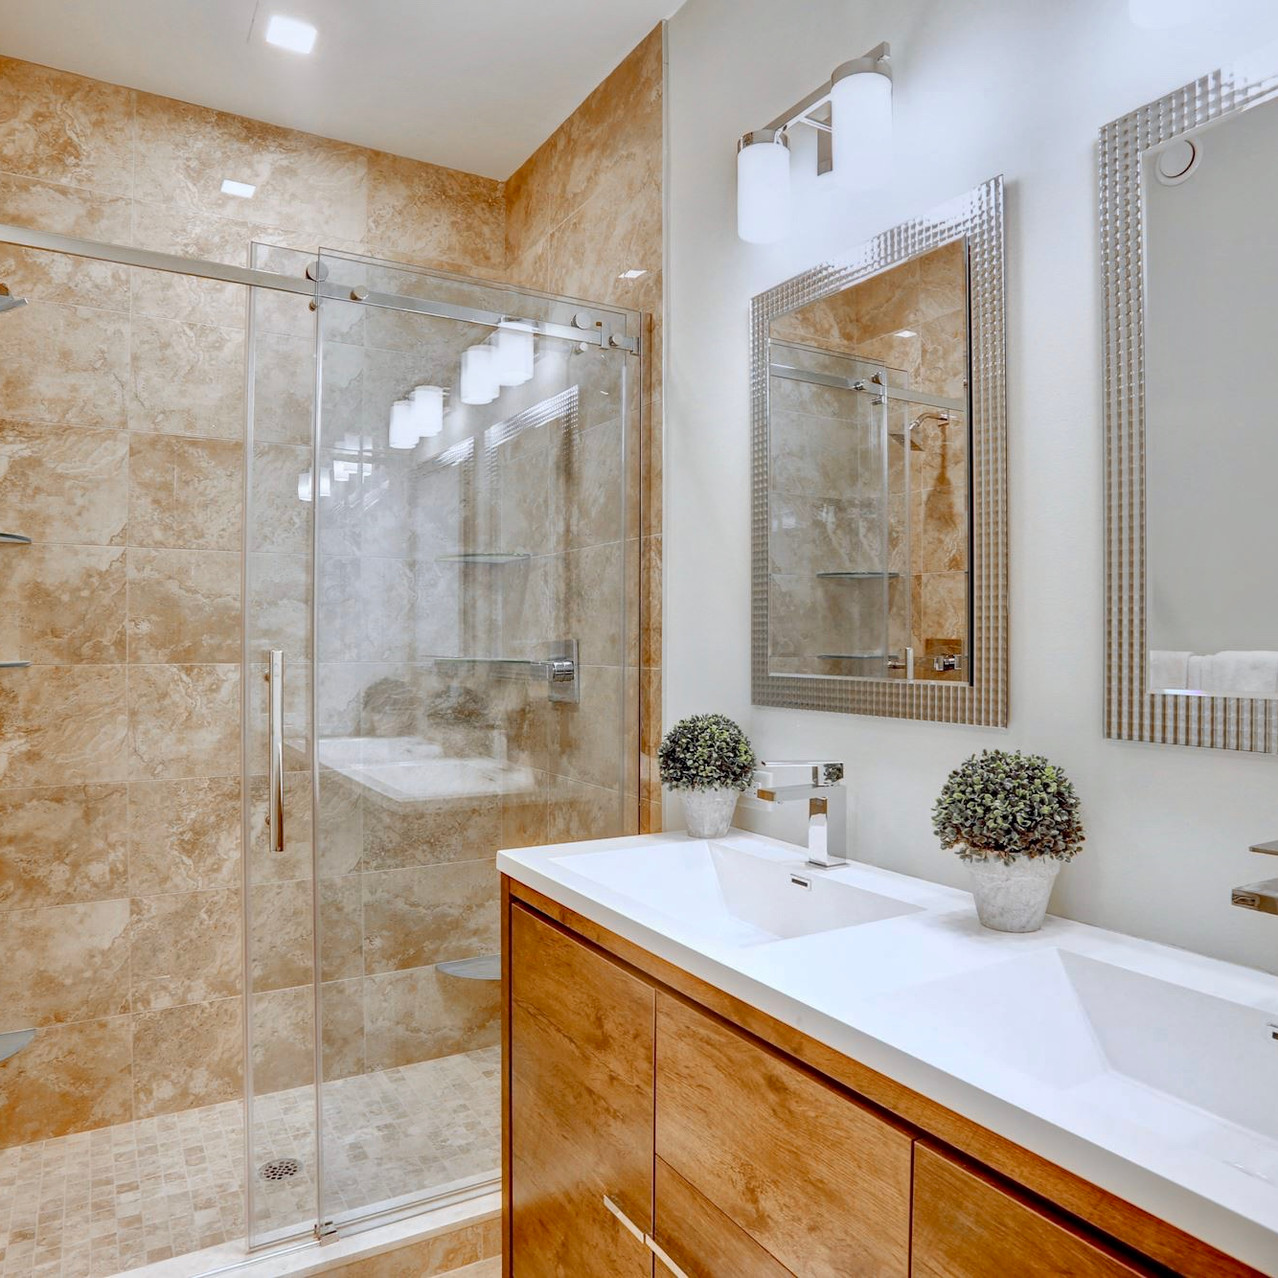 Lower owner's suite with dual vanity and 6' shower